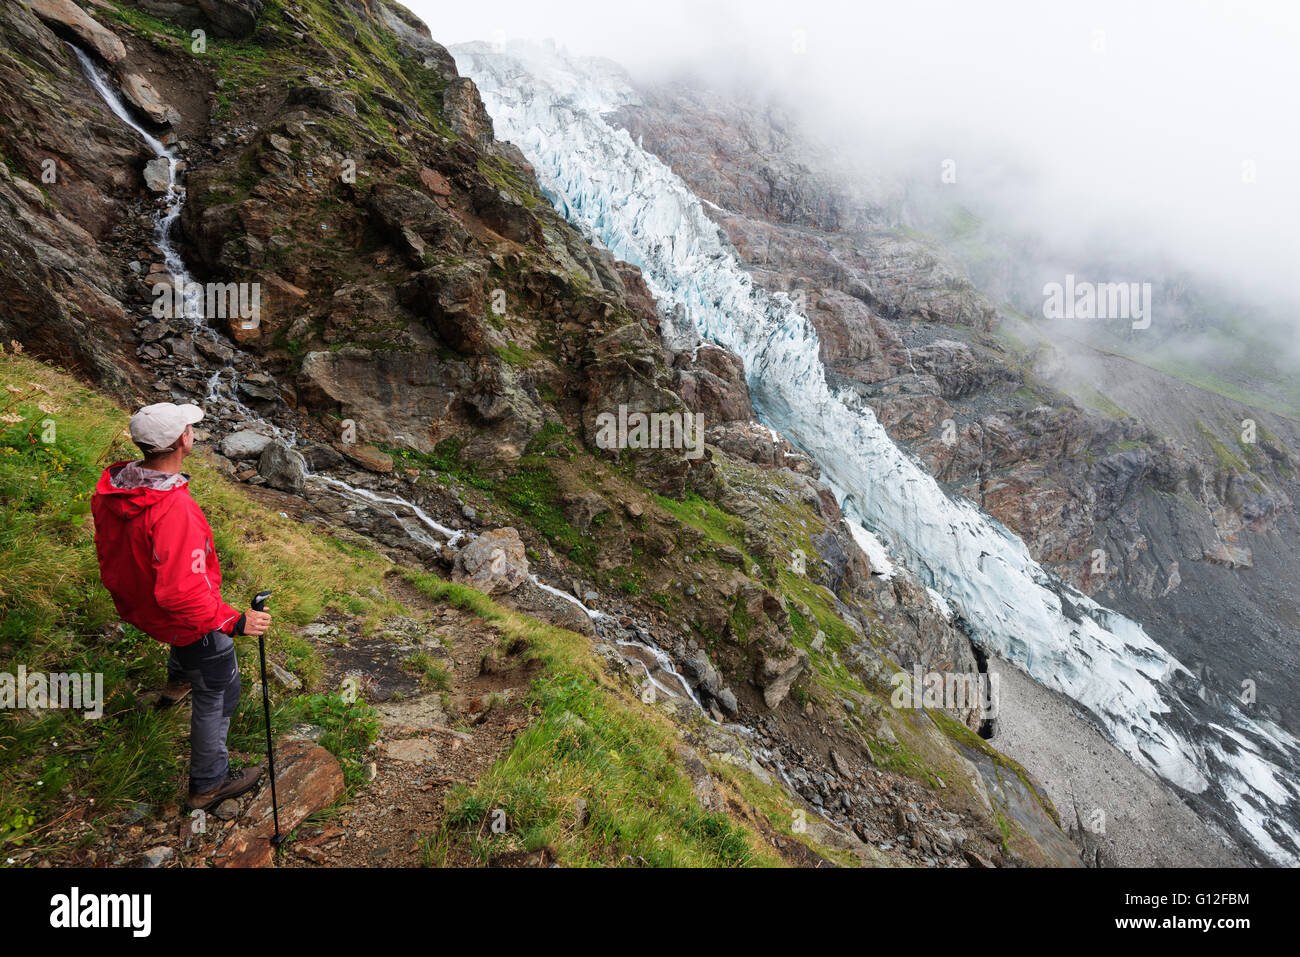 Europe, Switzerland, Bernese Oberland, Interlaken, Grindelwald, hiker on trail above Gletscher glacier - Stock Image